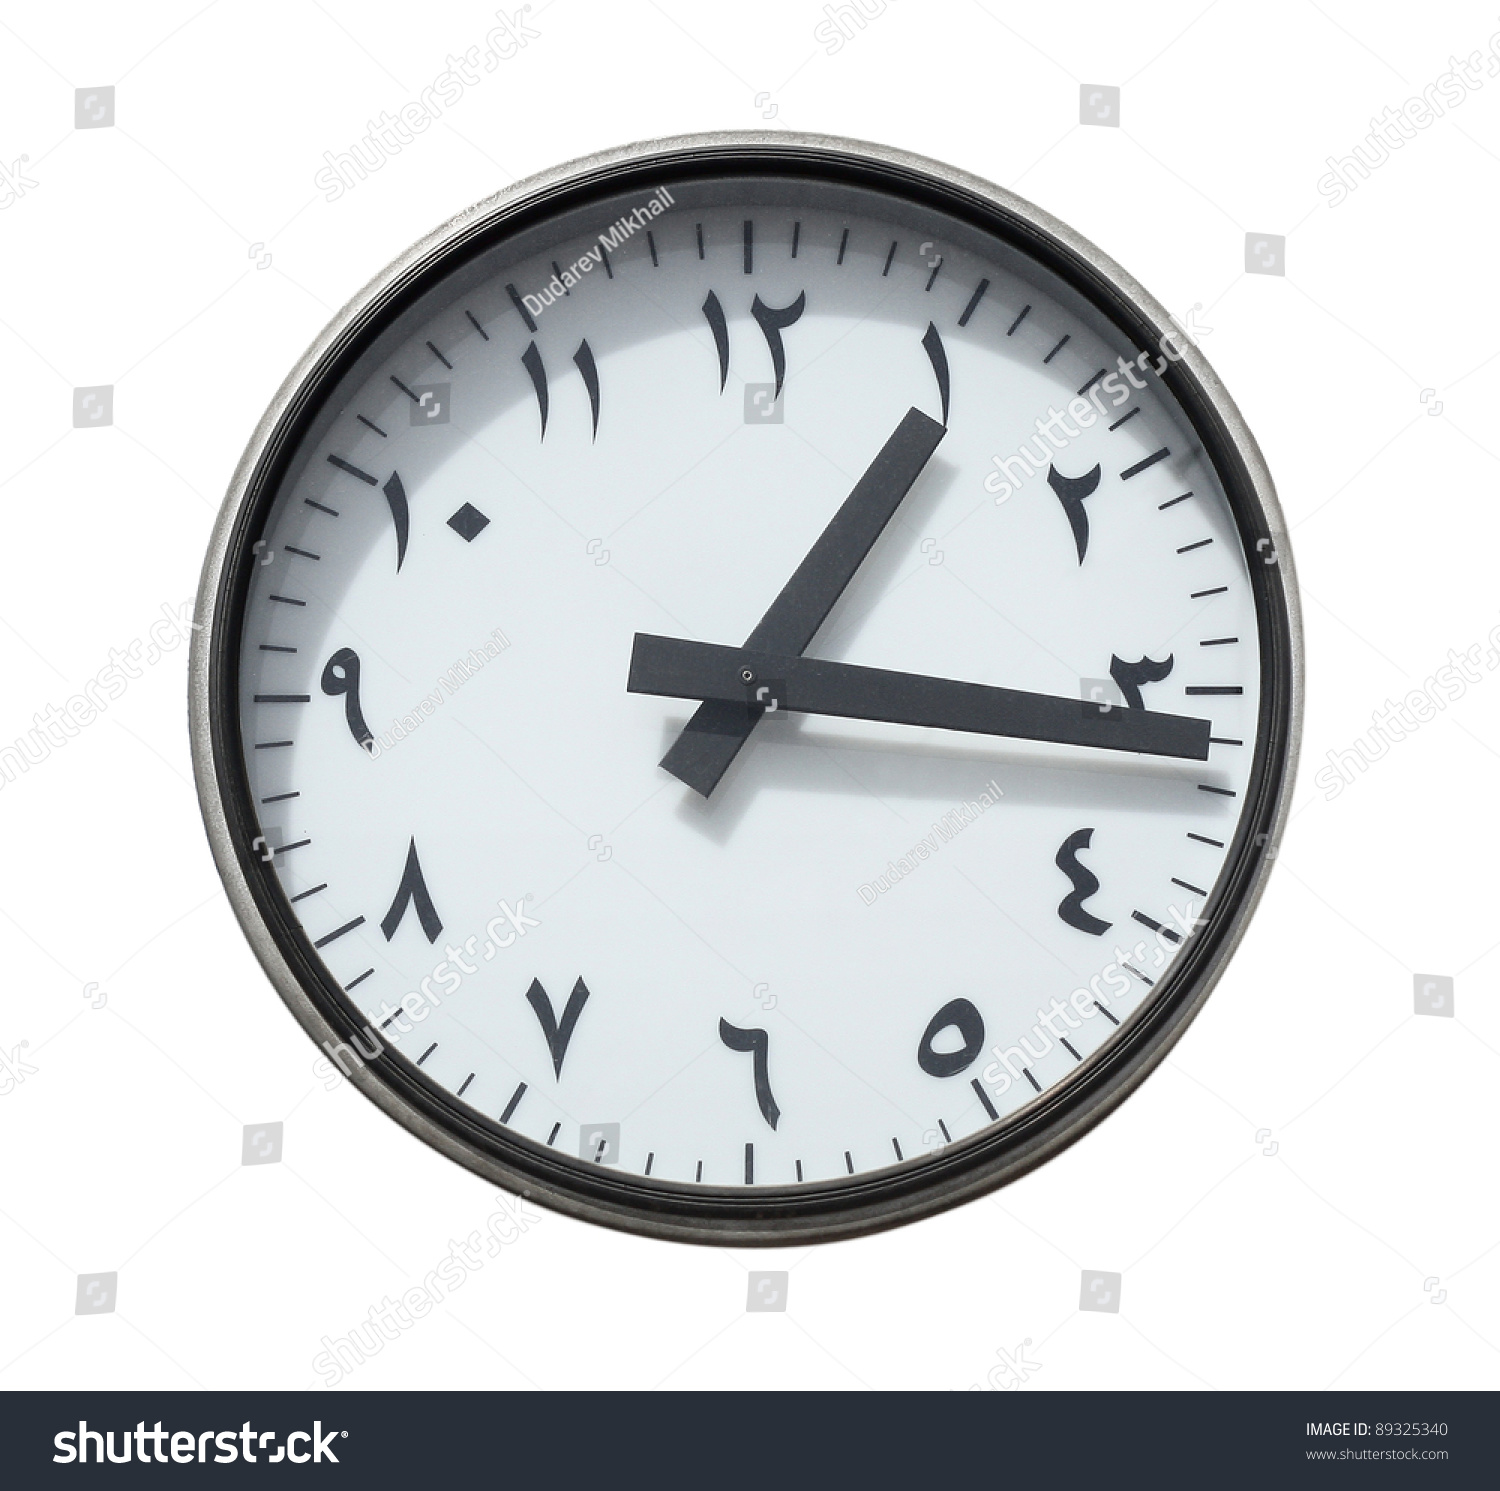 Round clock classical arabic font naskh stock photo 89325340 round clock with classical arabic font naskh isolated on a white amipublicfo Images